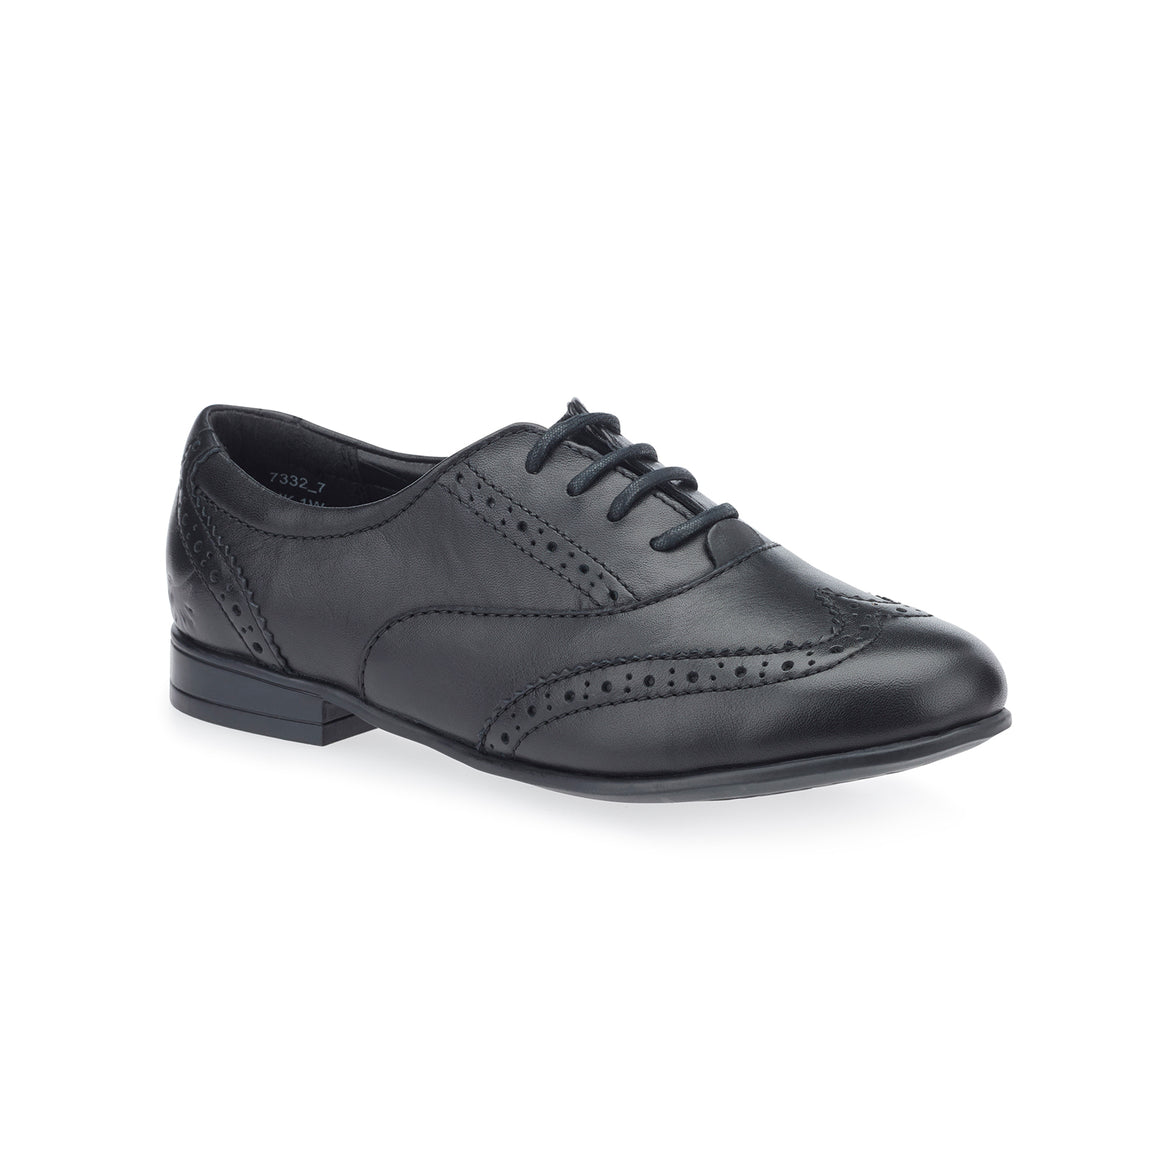 Matilda School Shoes for Girls in Black